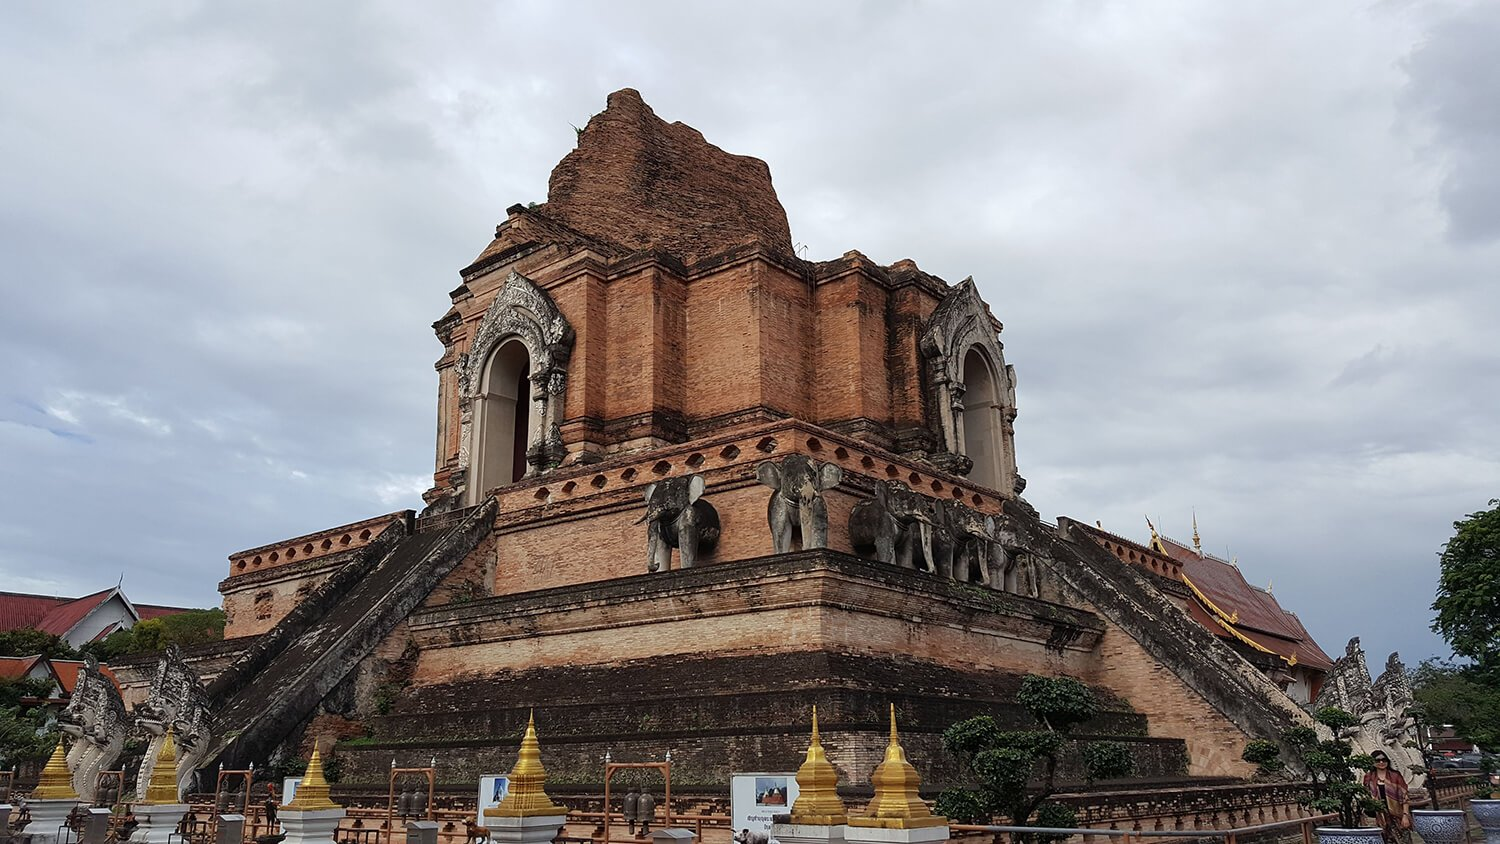 Temple ruins in Chiang Mai, Thailand